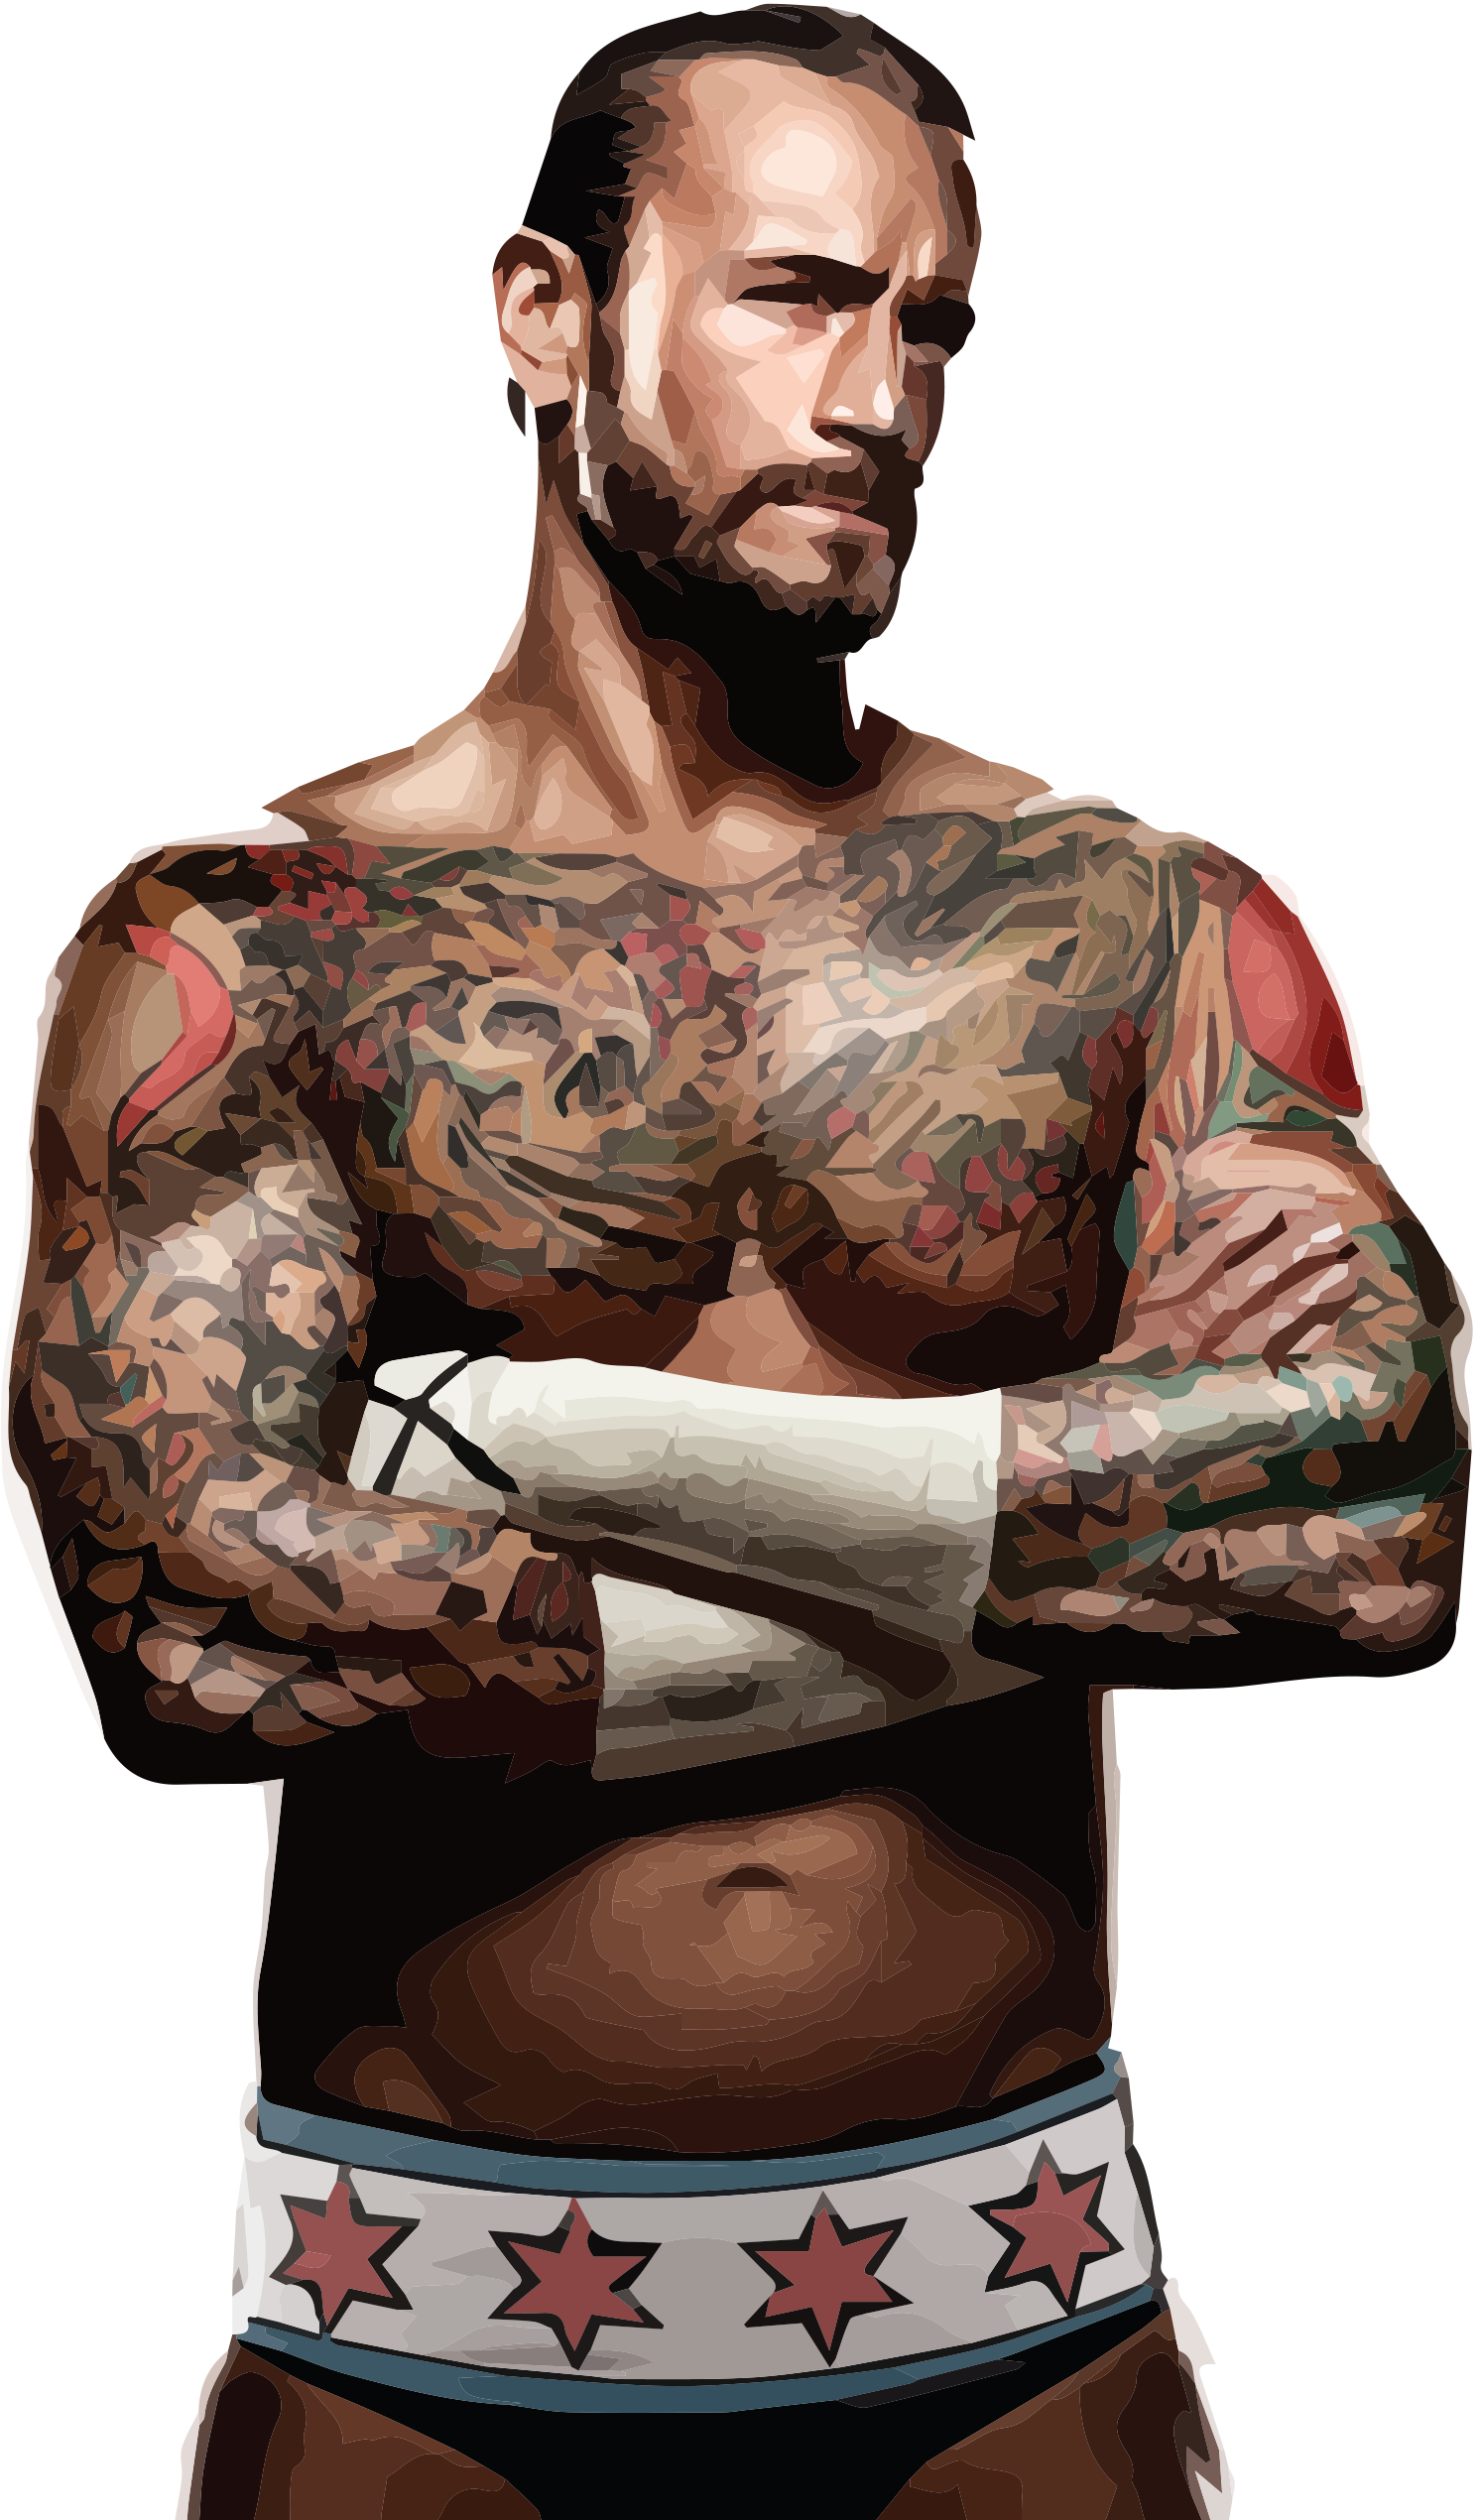 Nude pictures of cm punk